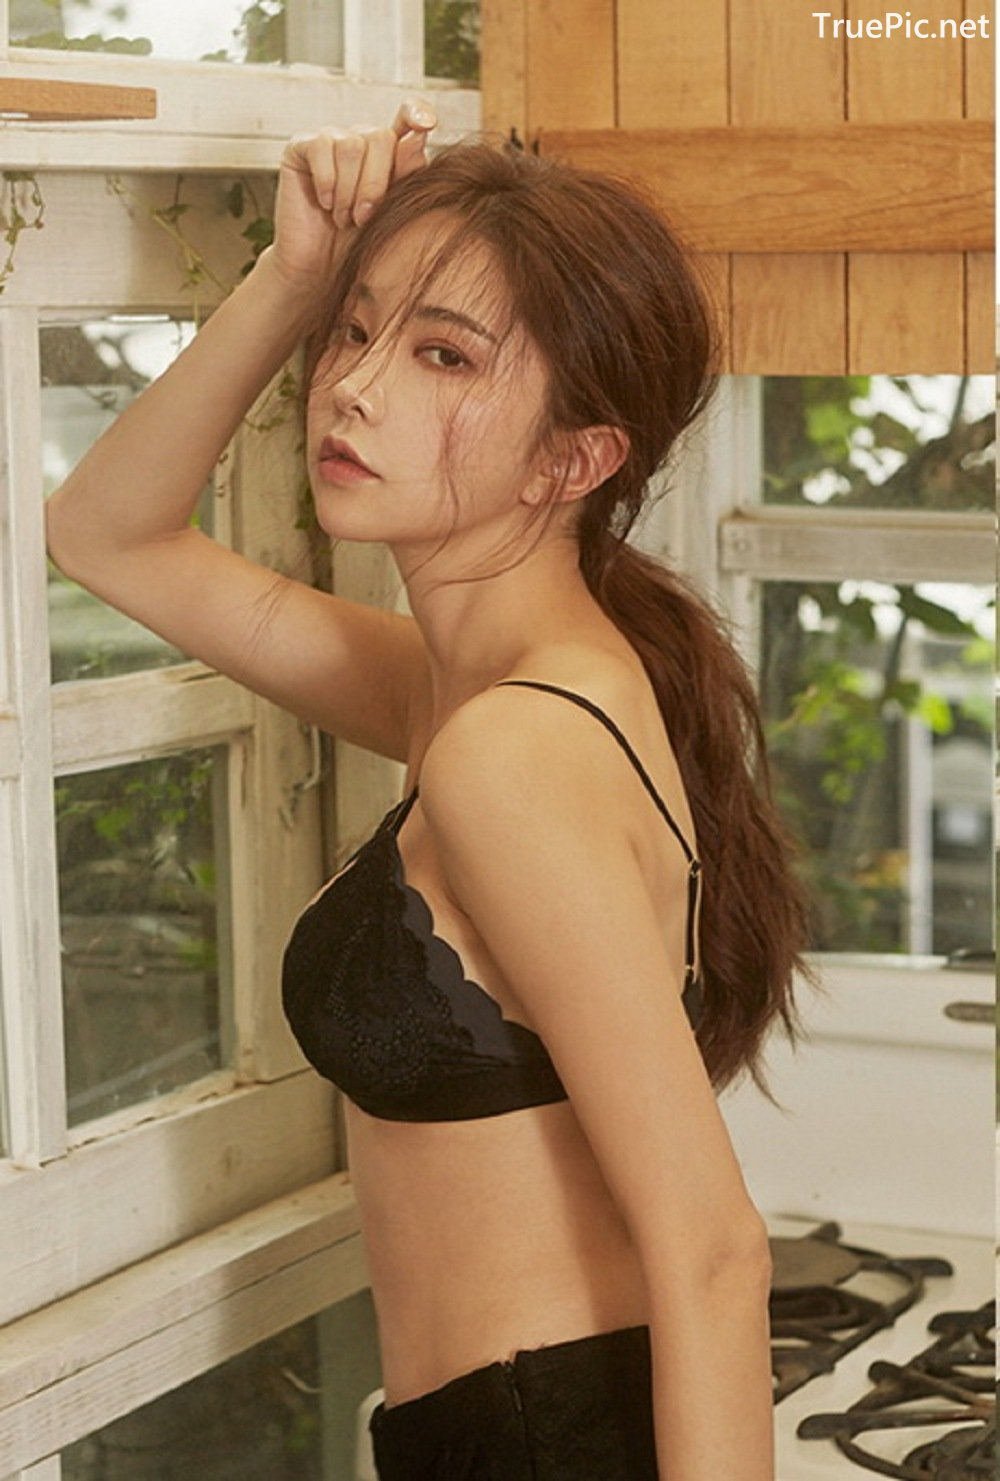 Image-Park-Soo-Yeon-Black-Red-and-White-Lingerie-Korean-Model-Fashion-TruePic.net- Picture-7